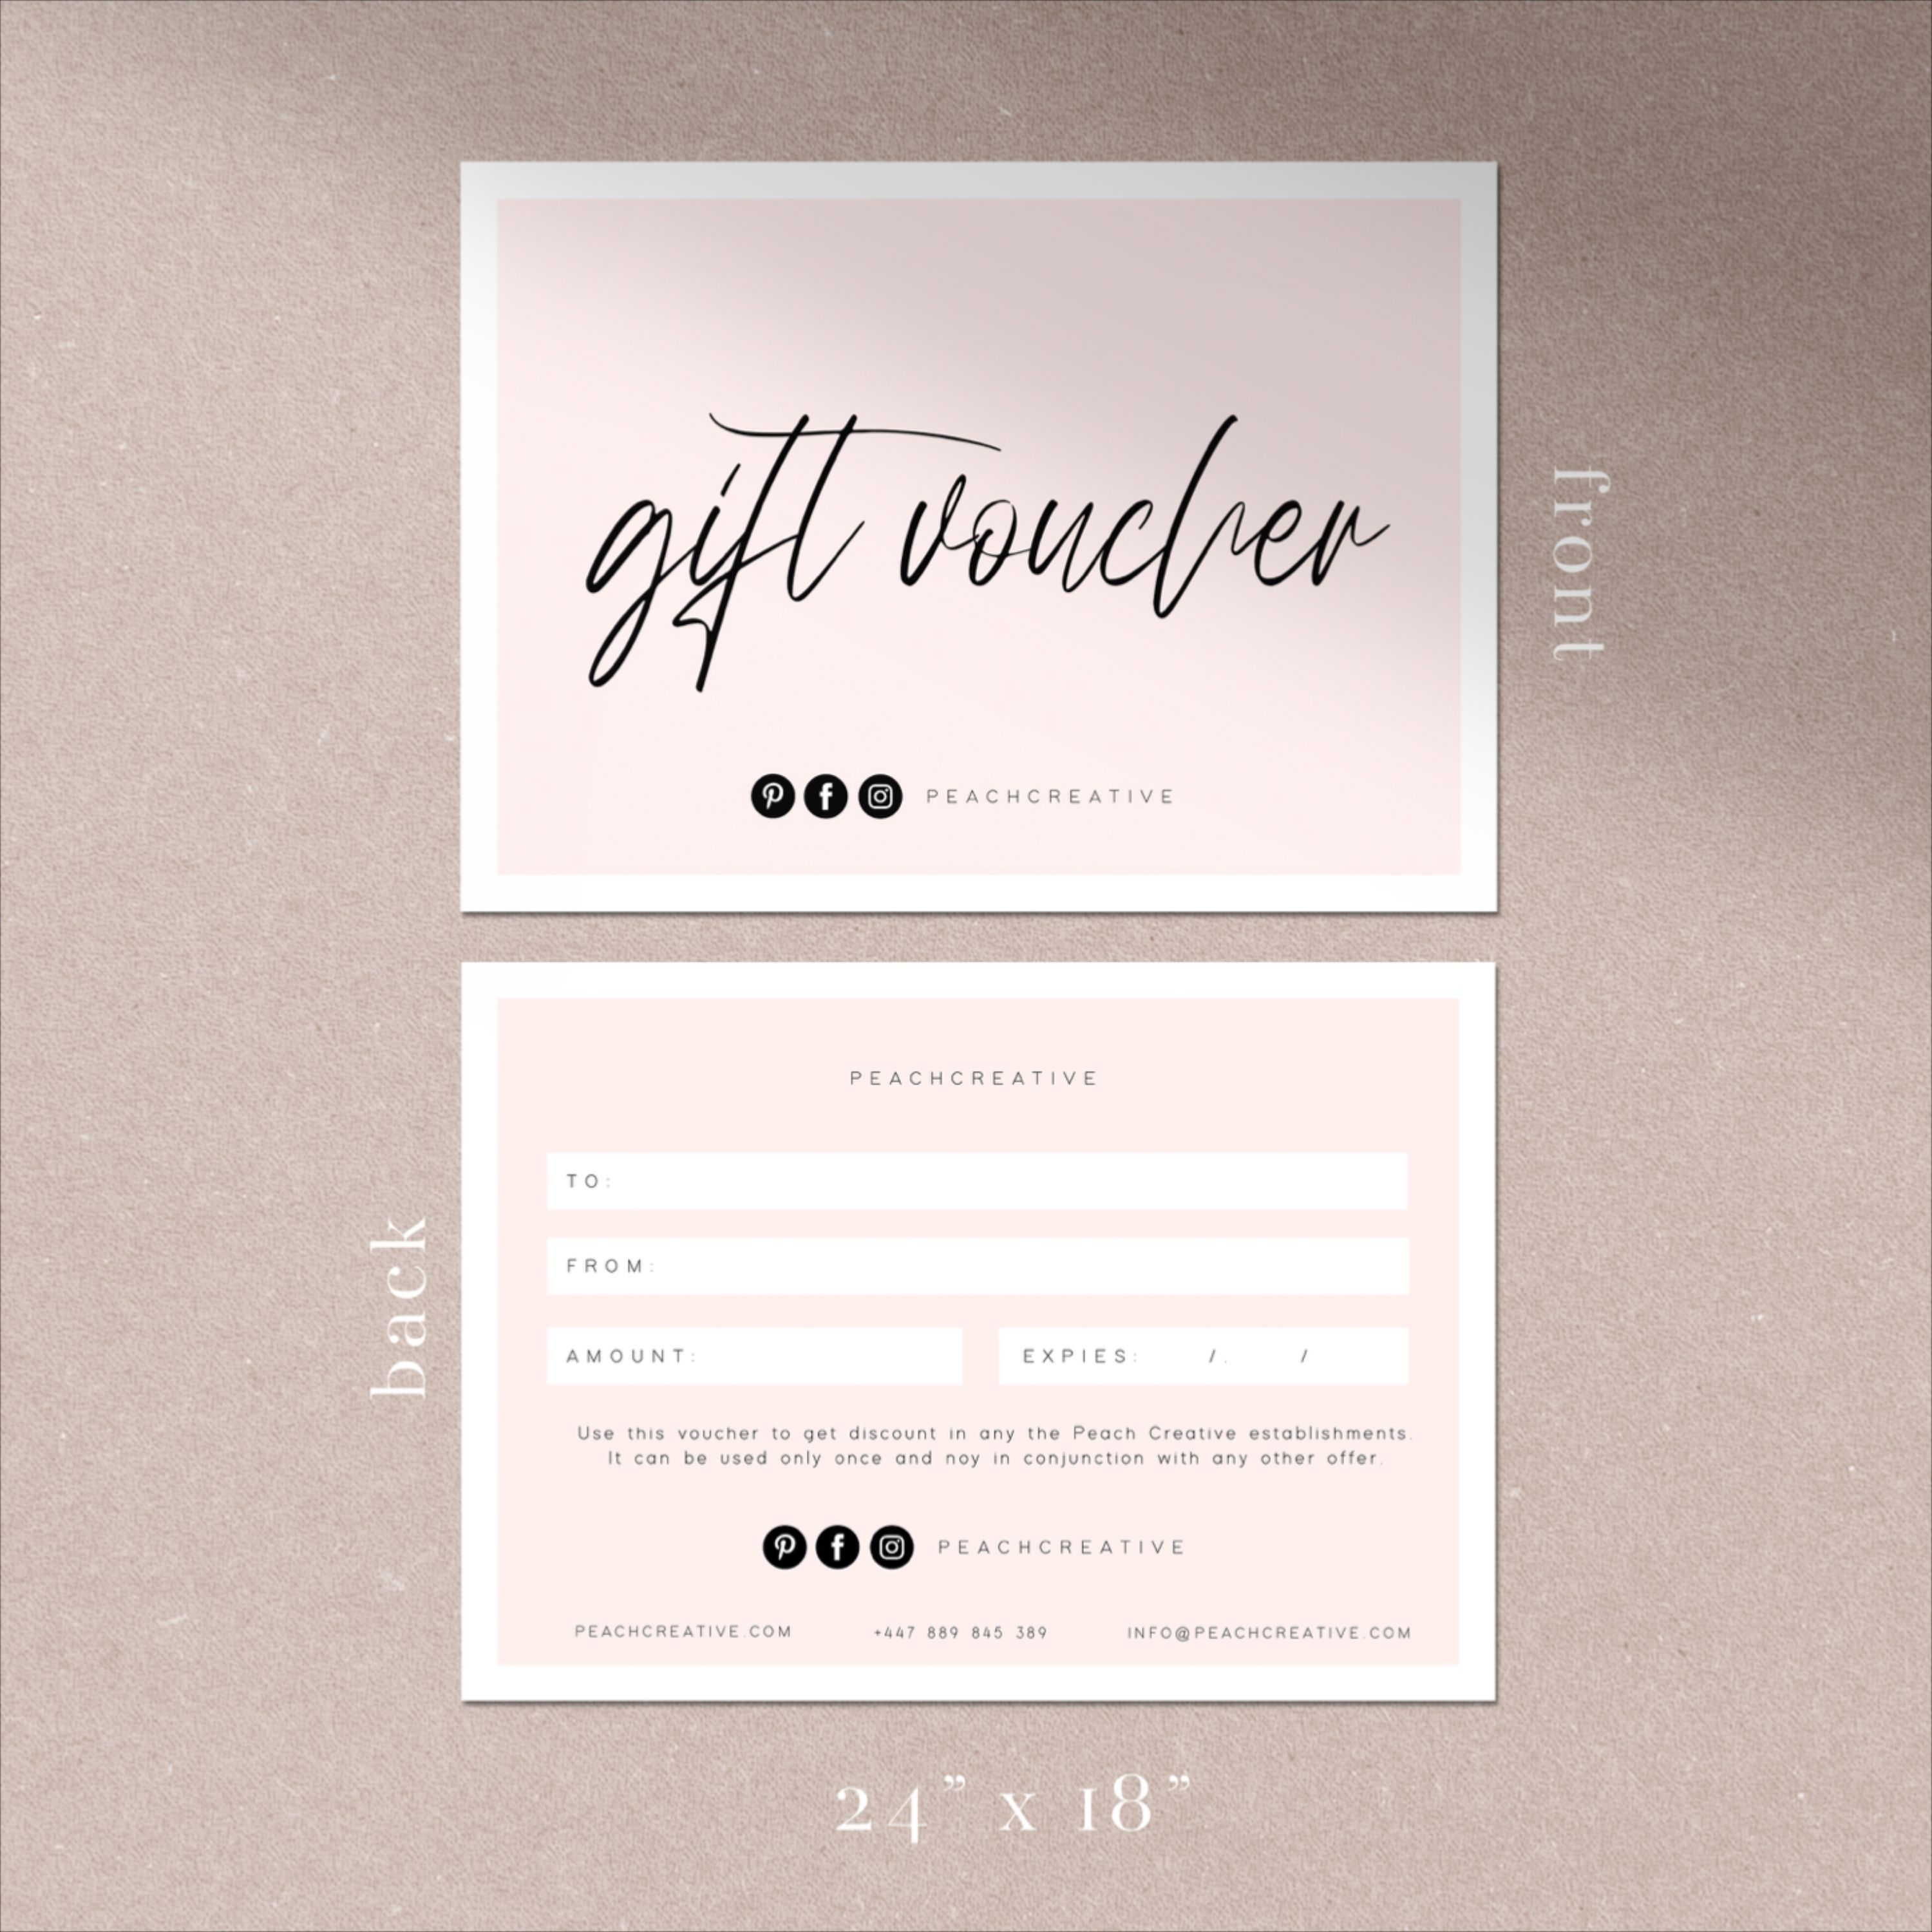 Small Business Gift Voucher Template Editable Gift Certificate Template Printable Gift Cards Diy Shop Voucher Customisable Gift Voucher Gift Certificate Template Small Business Gifts Gift Voucher Design Gift certificates for small business